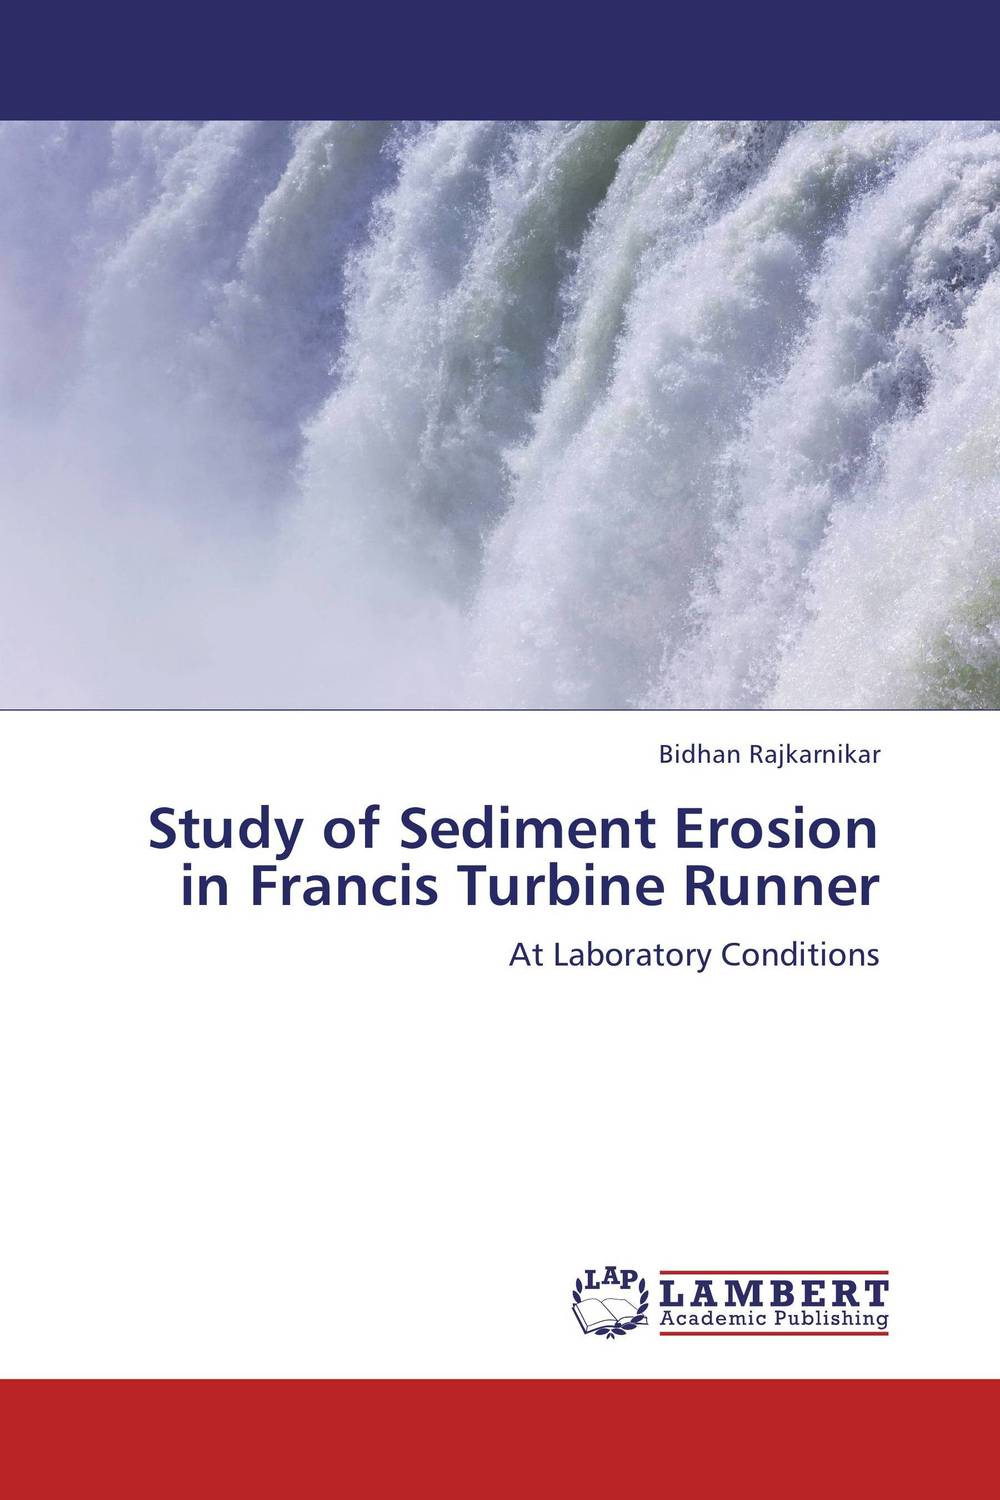 Study of Sediment Erosion in Francis Turbine Runner francis bacon in the 1950s